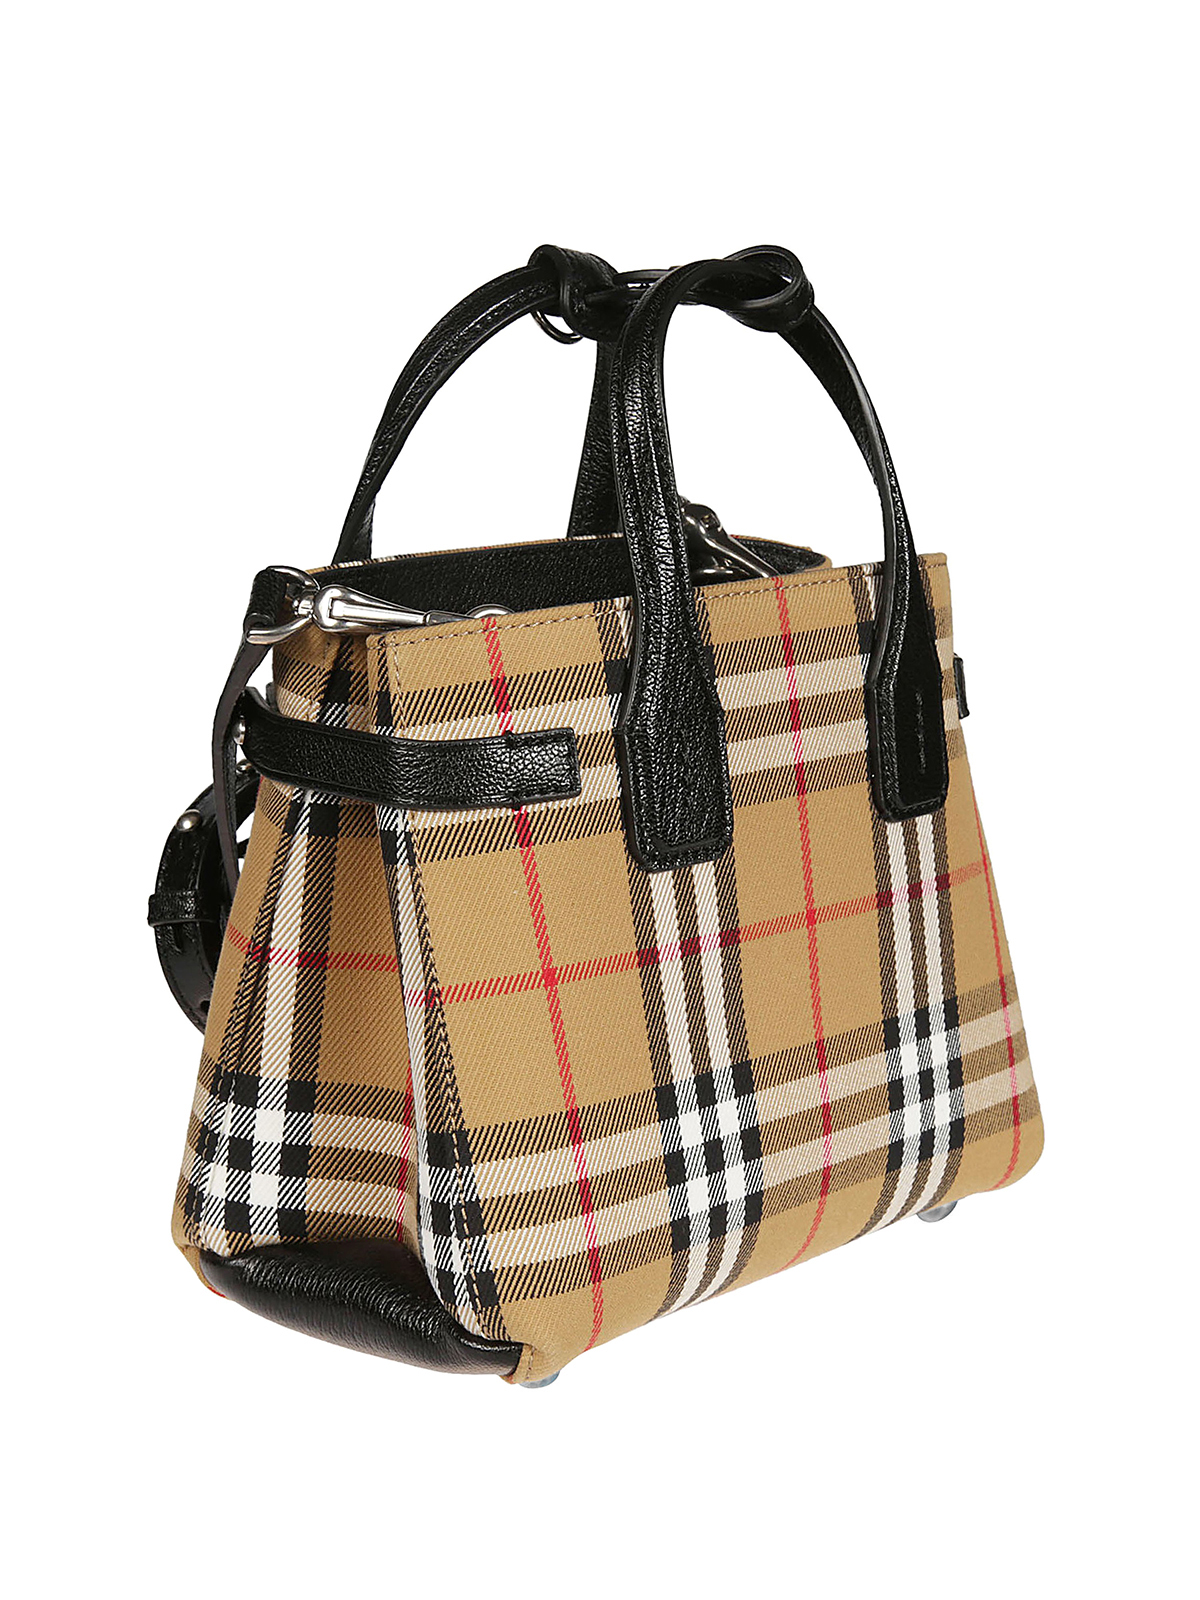 Burberry Baby Banner Vintage Check And Leather Bag Cross Body Bags 4079964